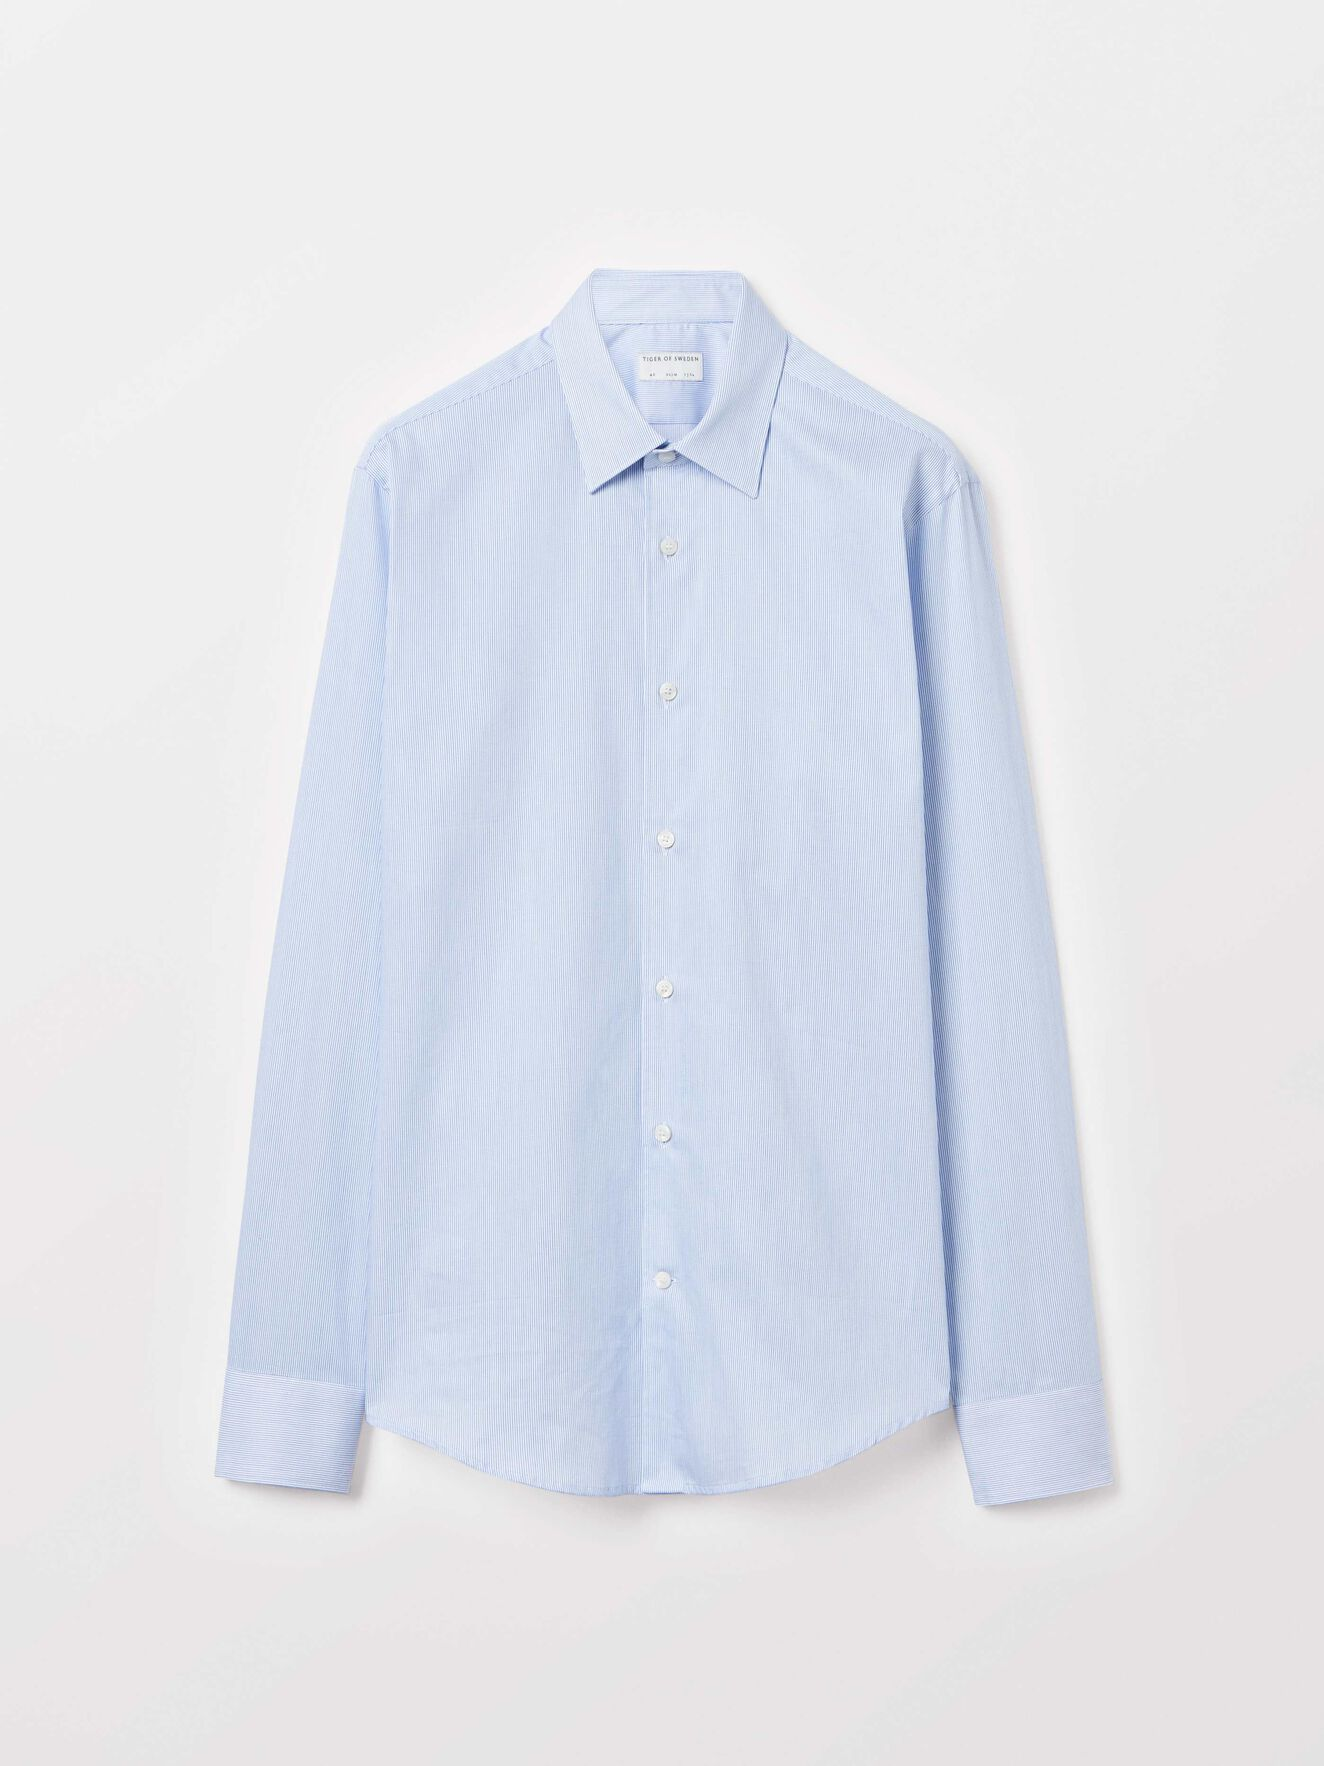 Farrell Shirt in Light Ink from Tiger of Sweden